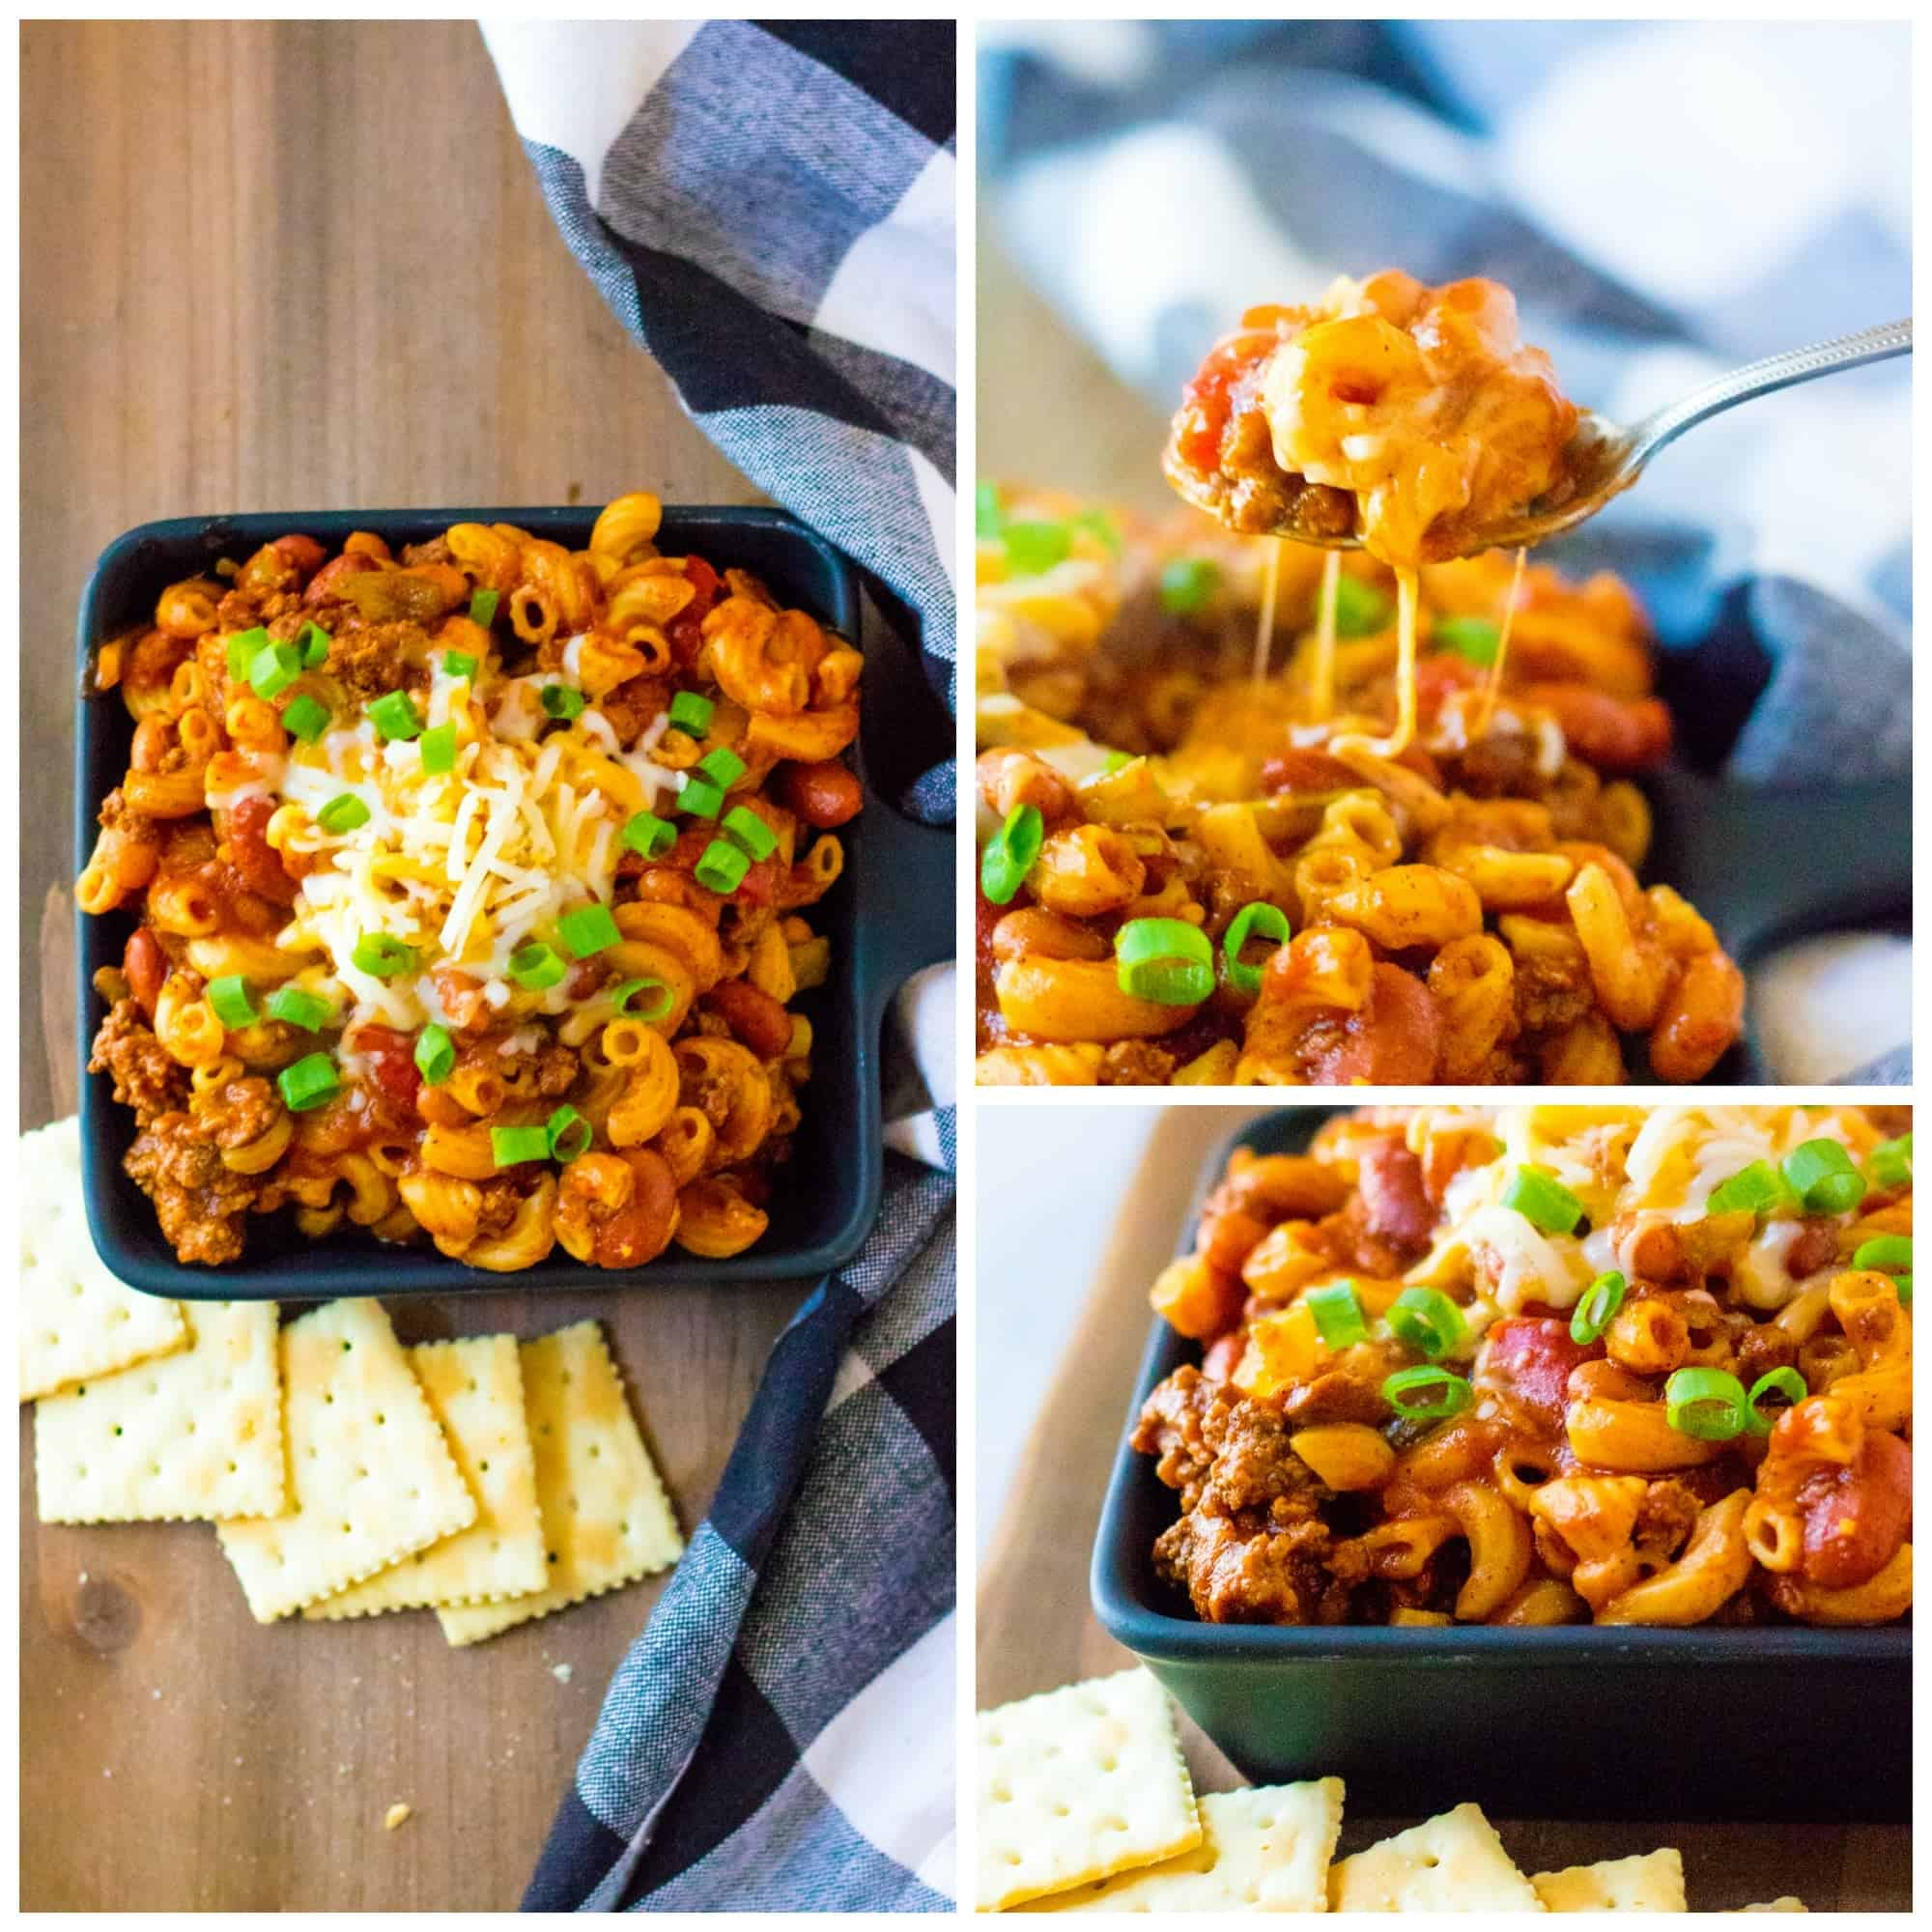 For a simple take on a hearty classic dish, follow this Slow Cooker Classic Goulash recipe. It combines the flavor of beans, onions, peppers, and ground beef to create a flavorful meal to eat for lunch or dinner. via @Mooreorlesscook